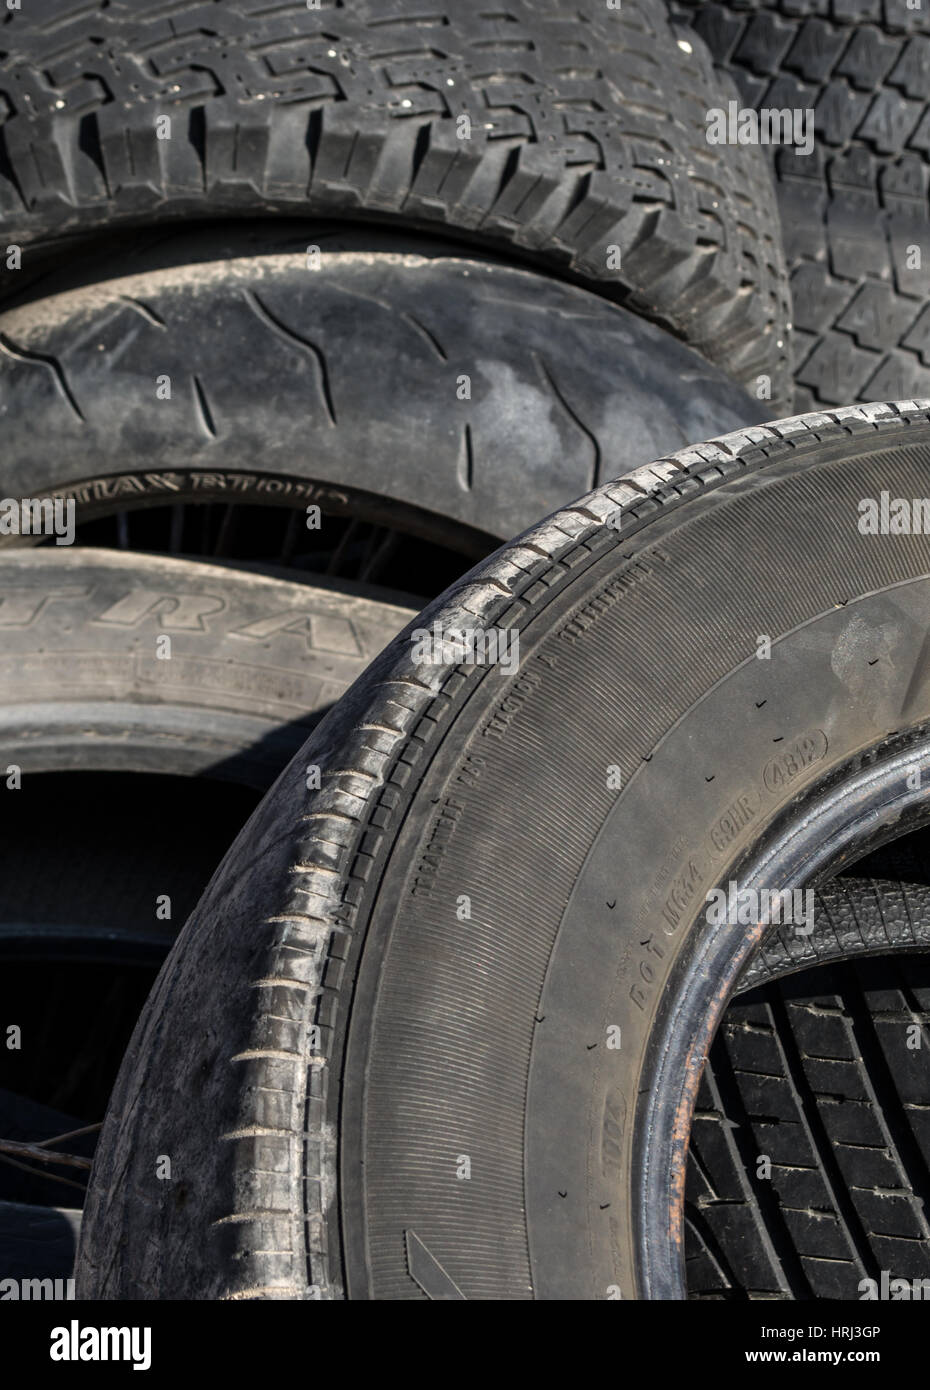 Used tire/tyre pile. - Stock Image